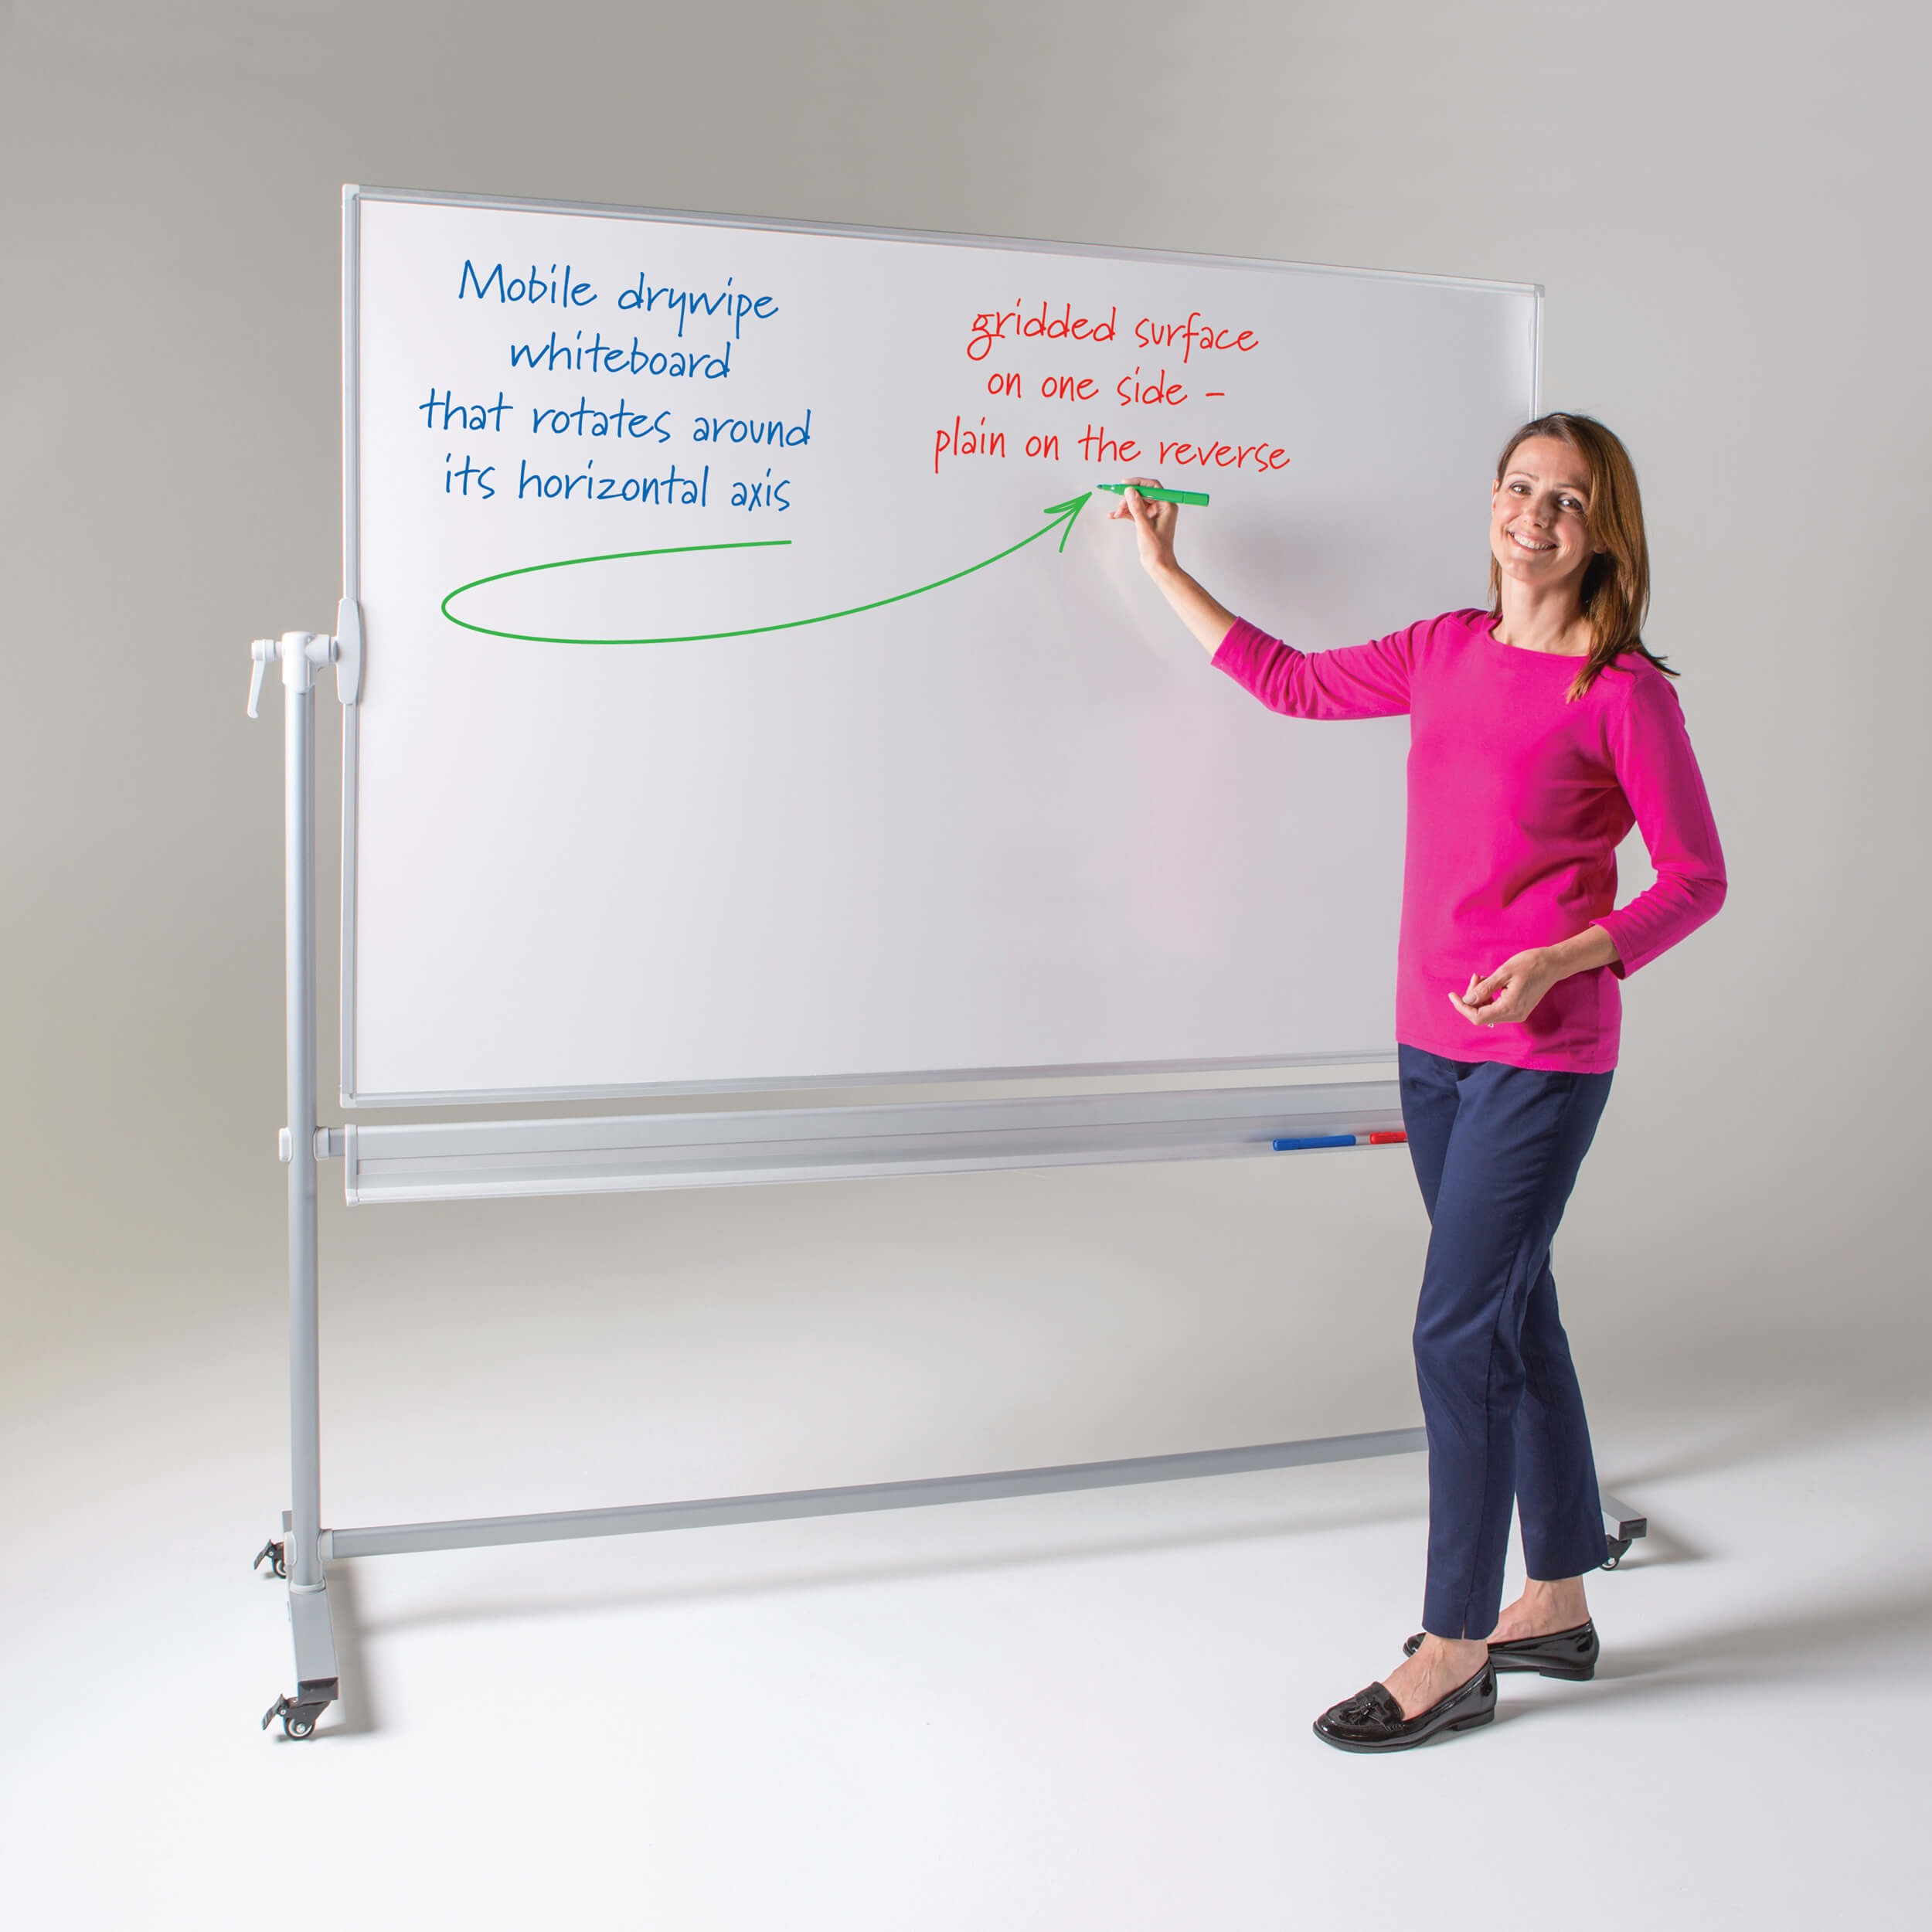 Revolving mobile whiteboard